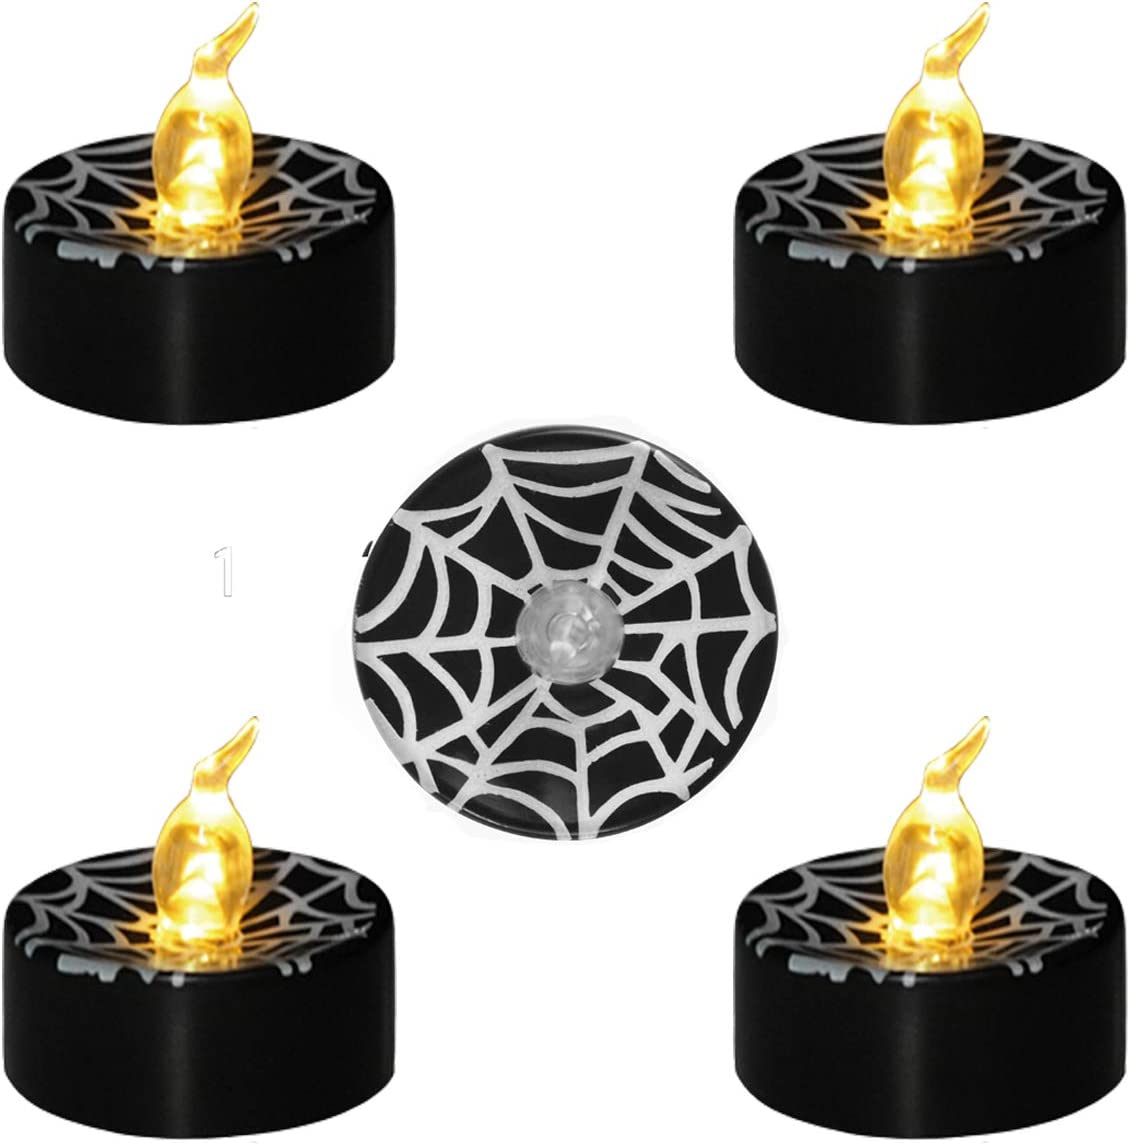 Amazon LedBack Halloween Decorations Candle Black Tea